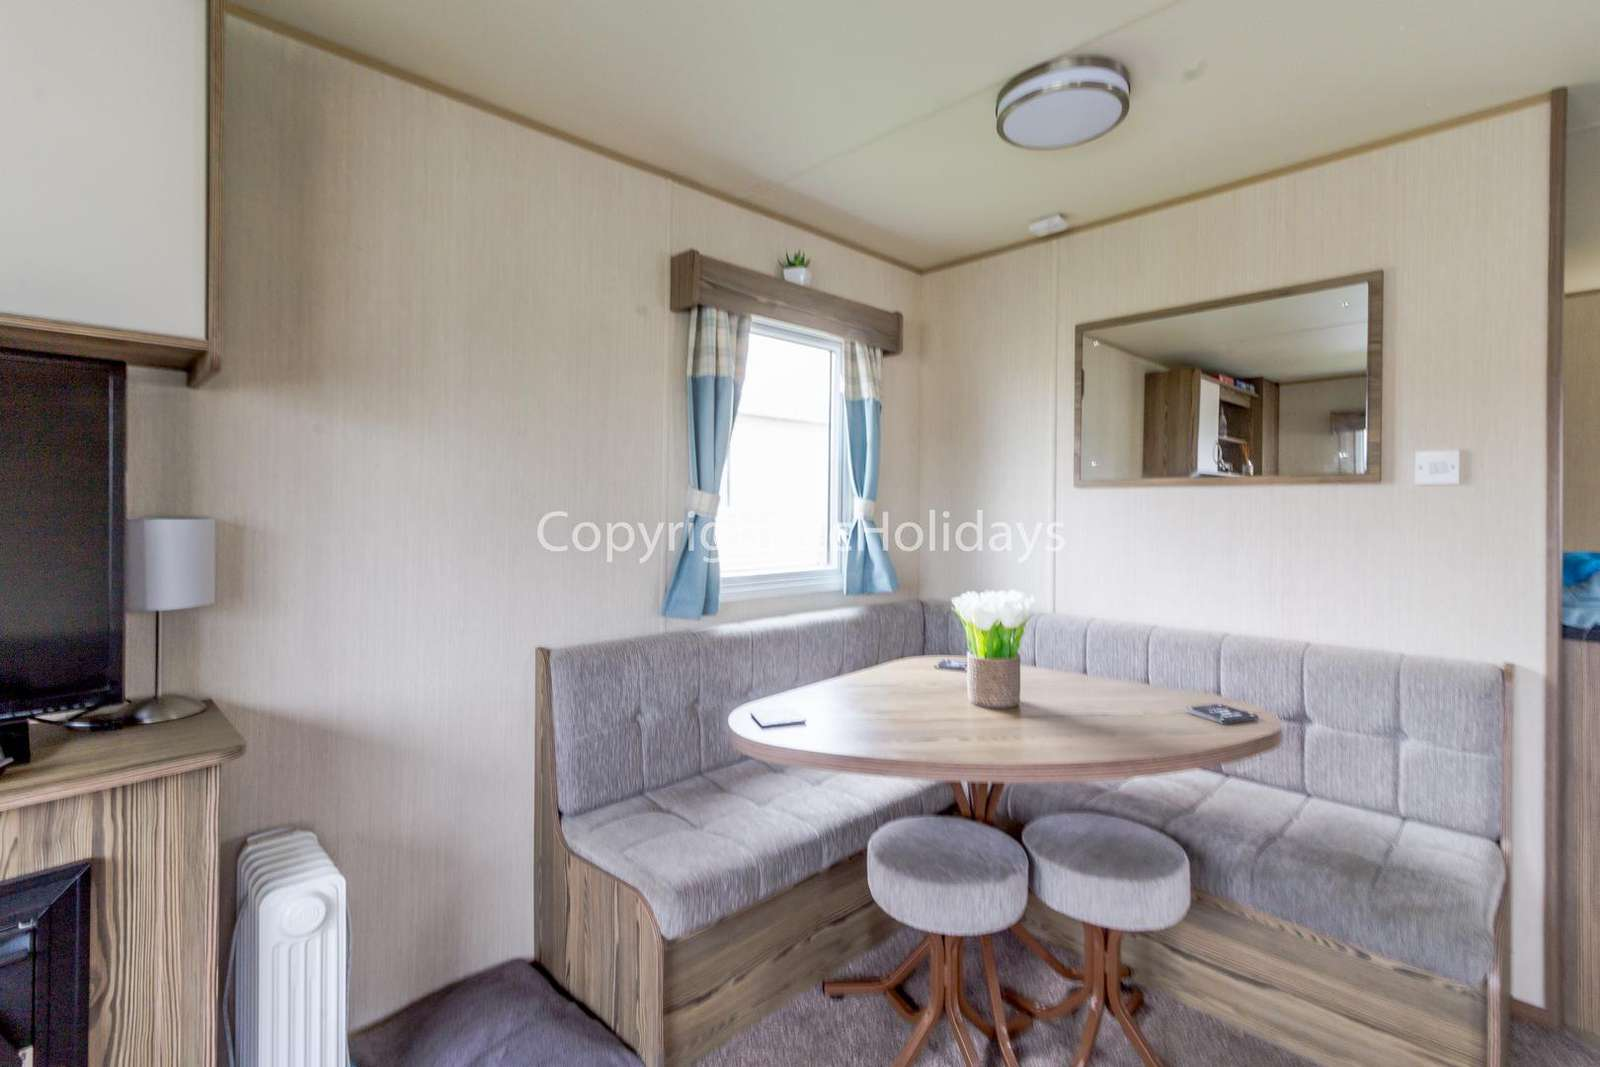 Great dining area, ideal for self-catering holidays!